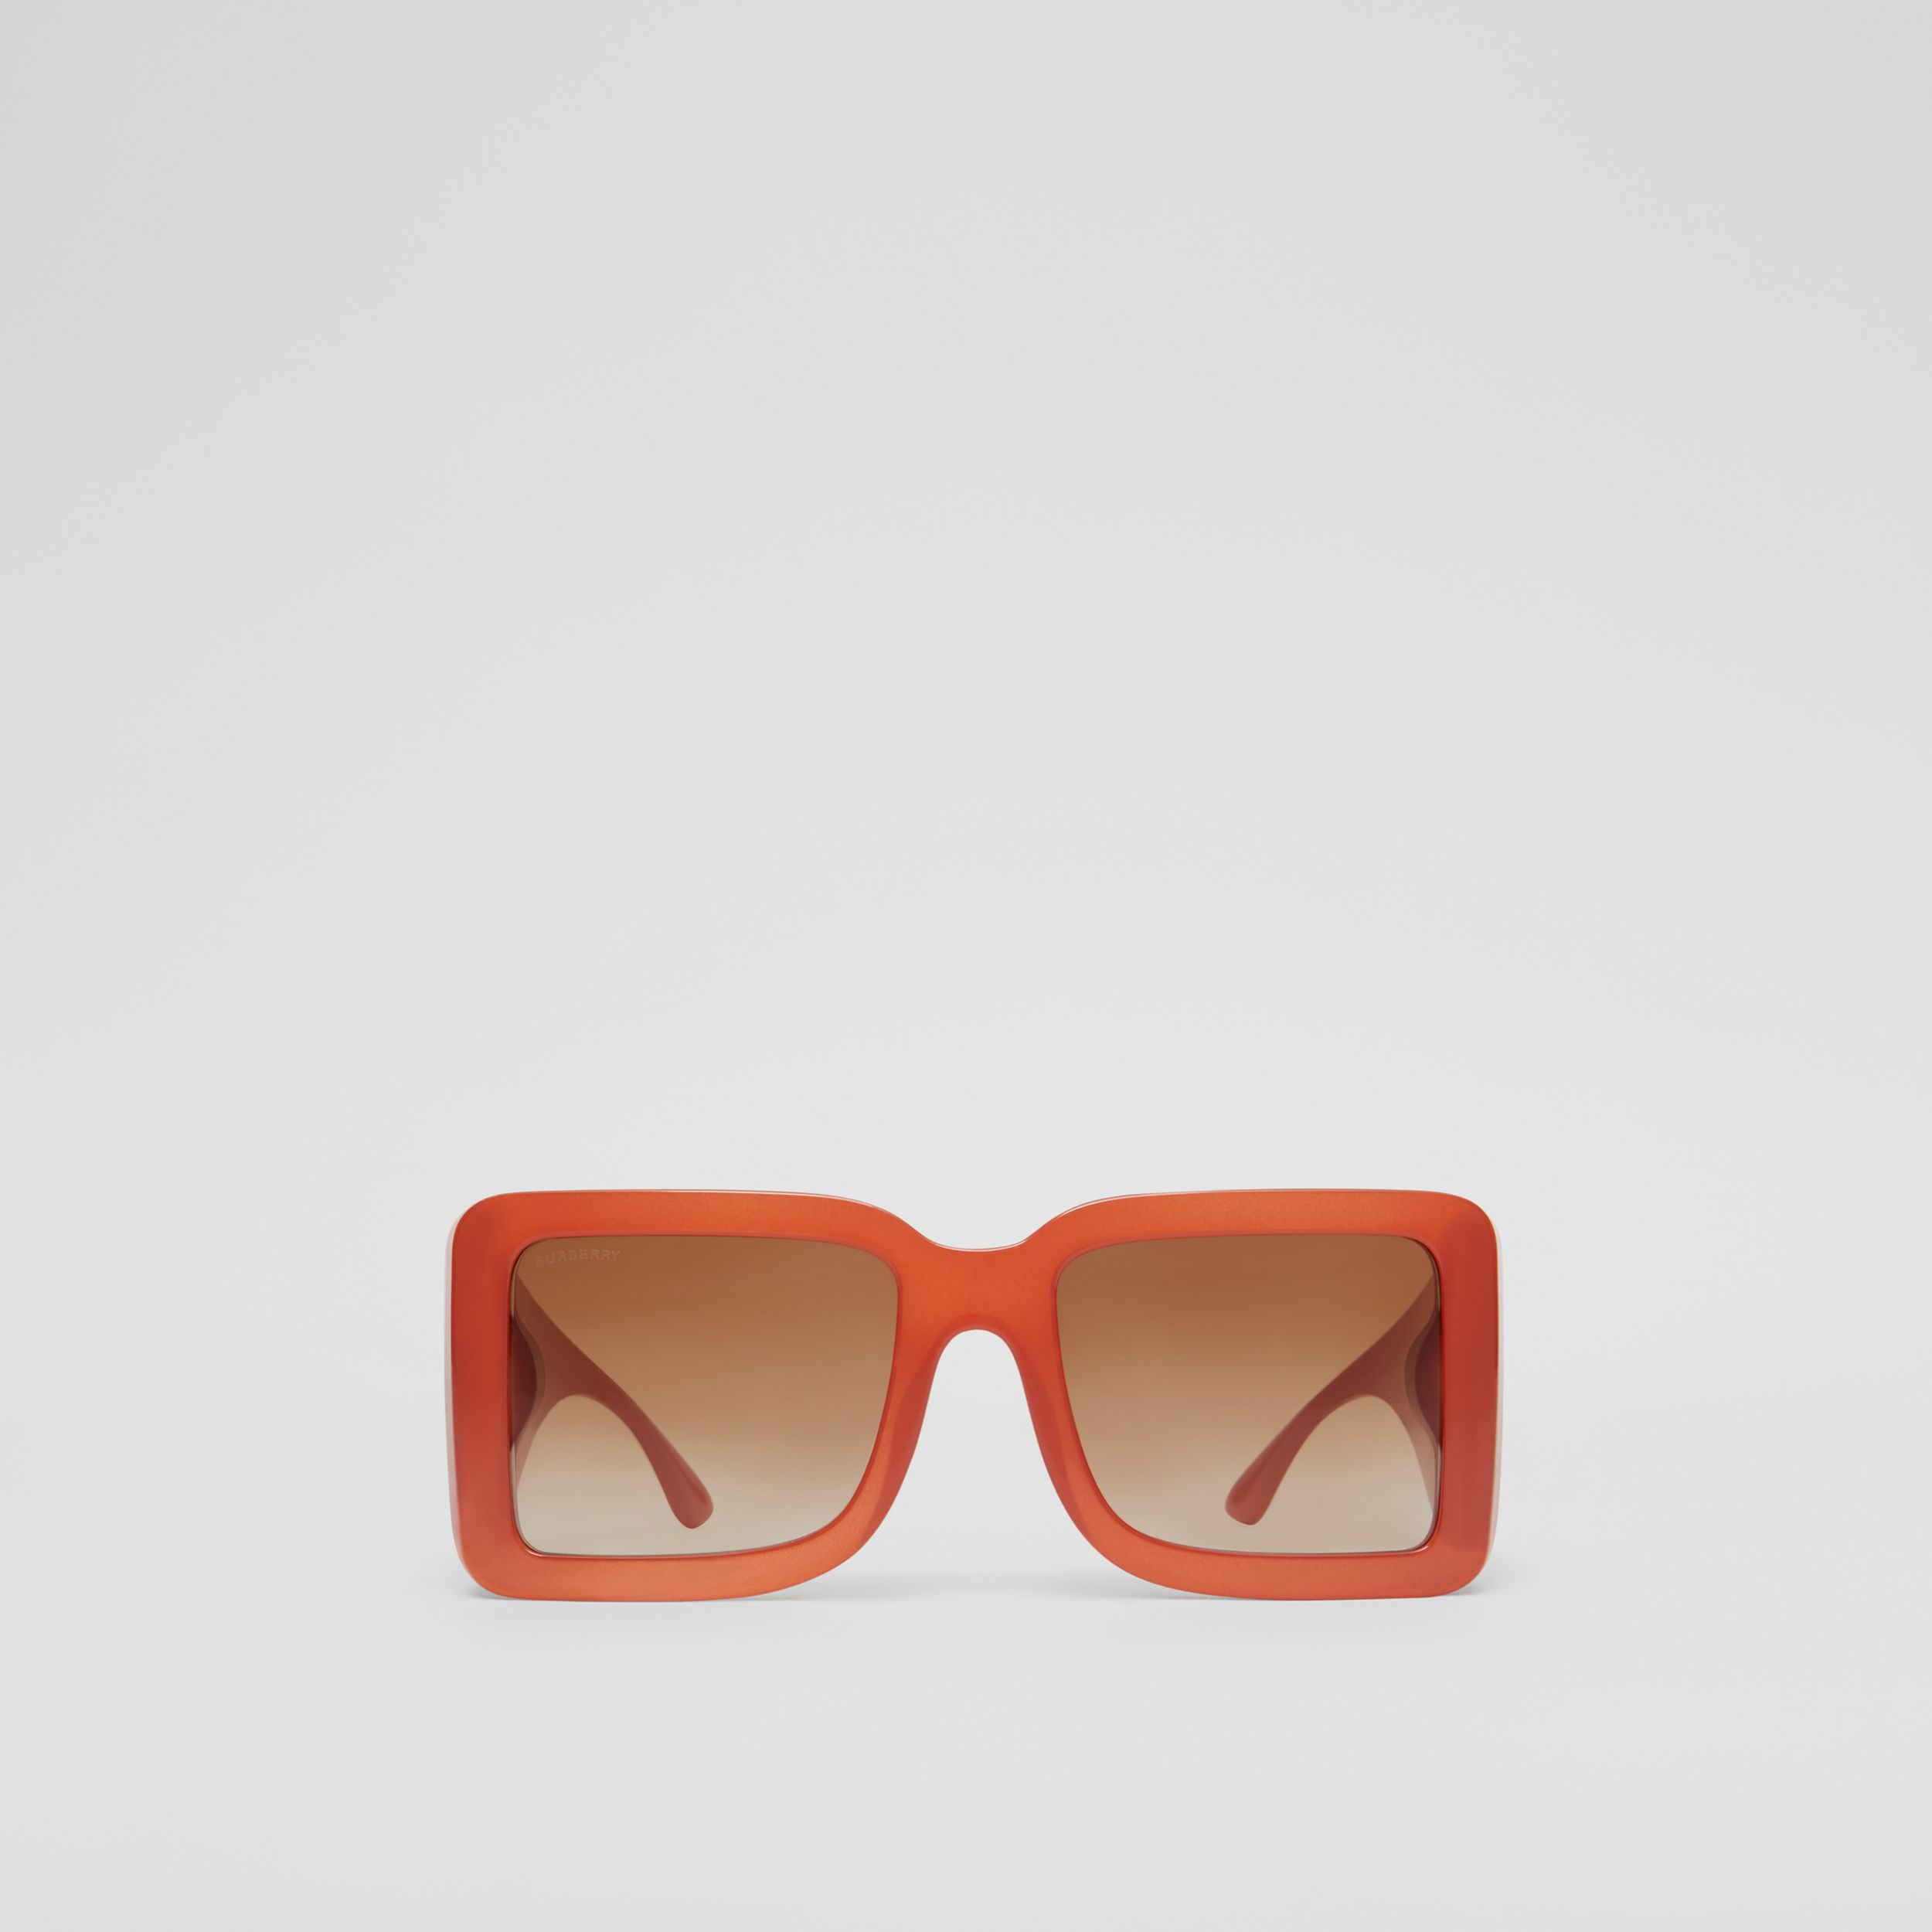 B Motif Square Frame Sunglasses in Orange | Burberry - 1